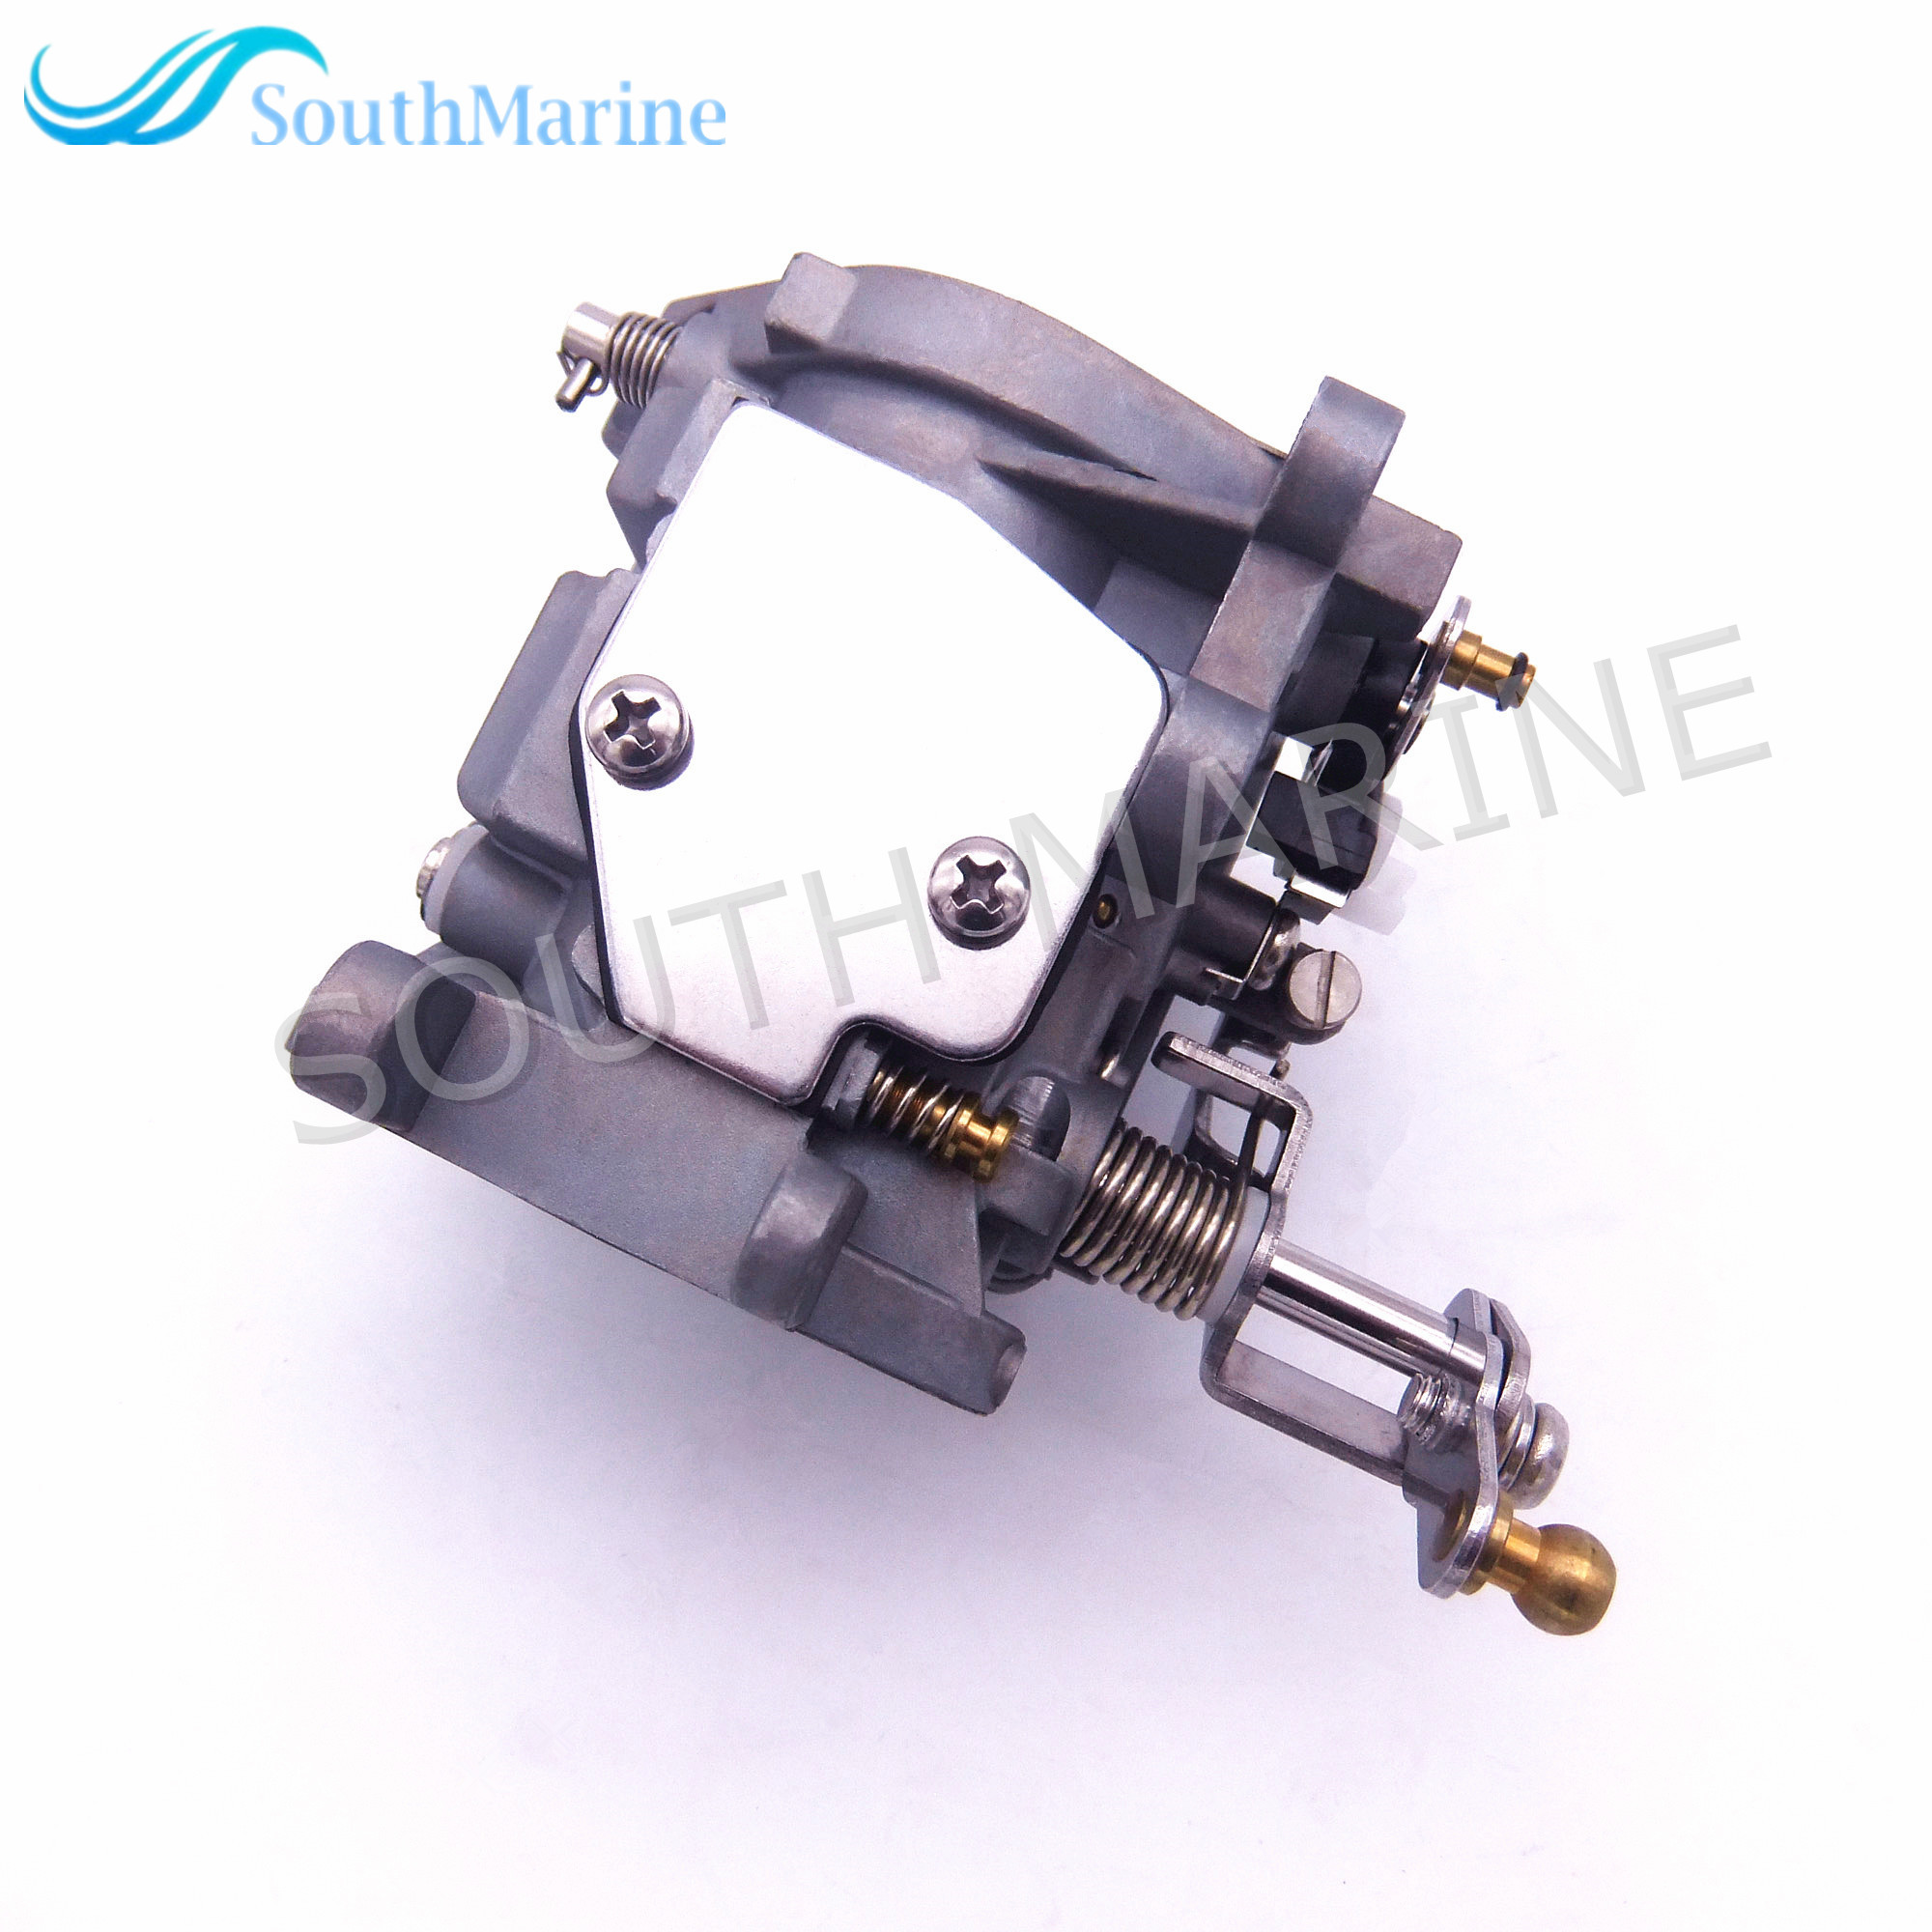 Outboard Engine Boat Motor Carburetor Assy 69P-14301-00  69S-14301-00  for Yahama 2-stroke E25B E30H  25B 30H Free Shipping 6b4 45501 10 driver shaft long for yamaha 9 9hp 15hp 2 stroke 15d outboard engine boat motor aftermarket parts 6b4 45501